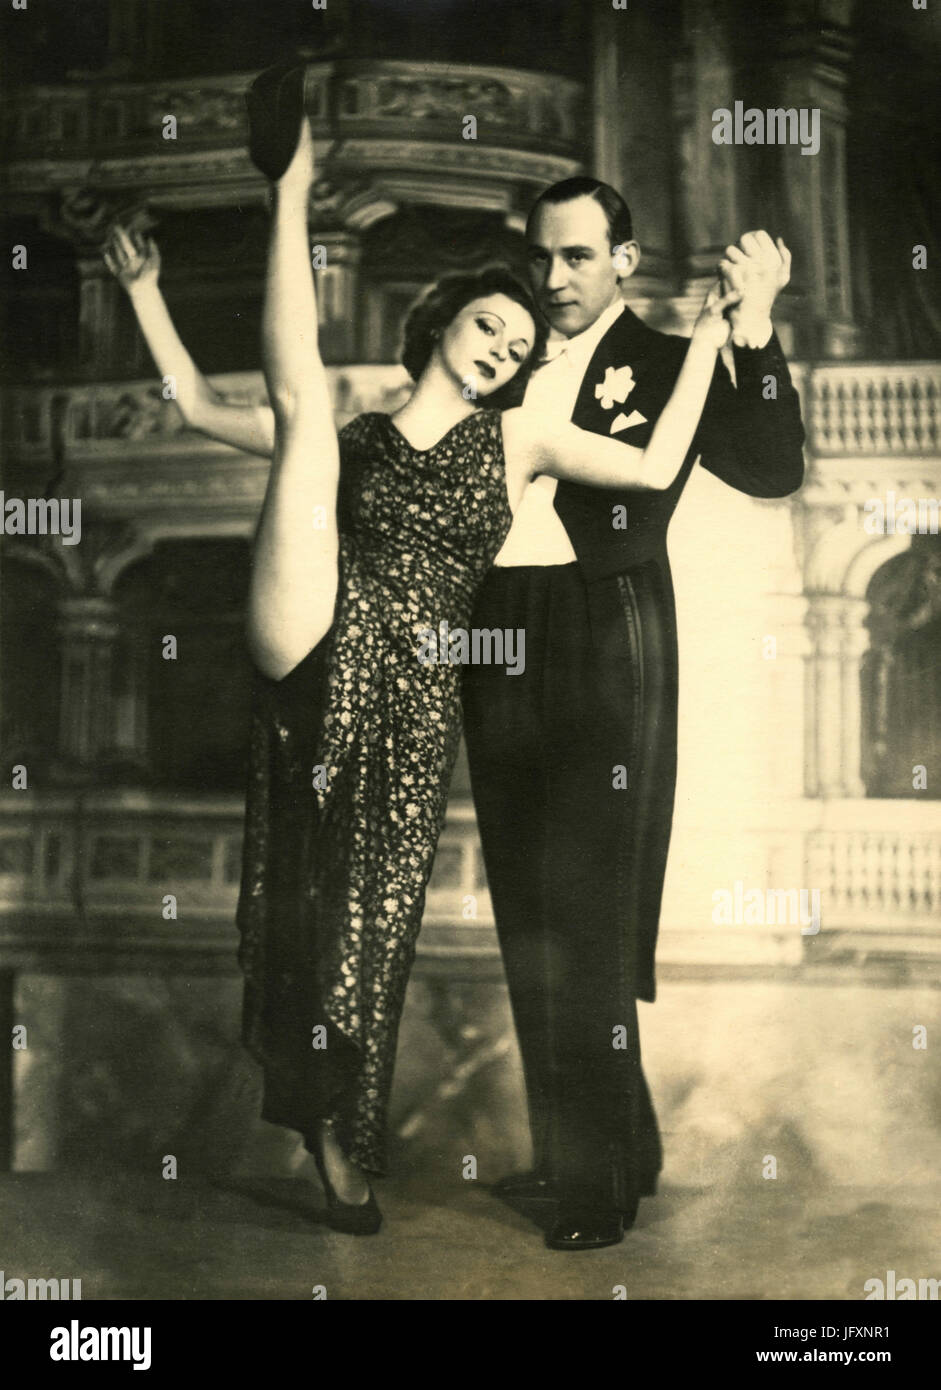 German dancing couple Francis & Fred, 1930s - Stock Image